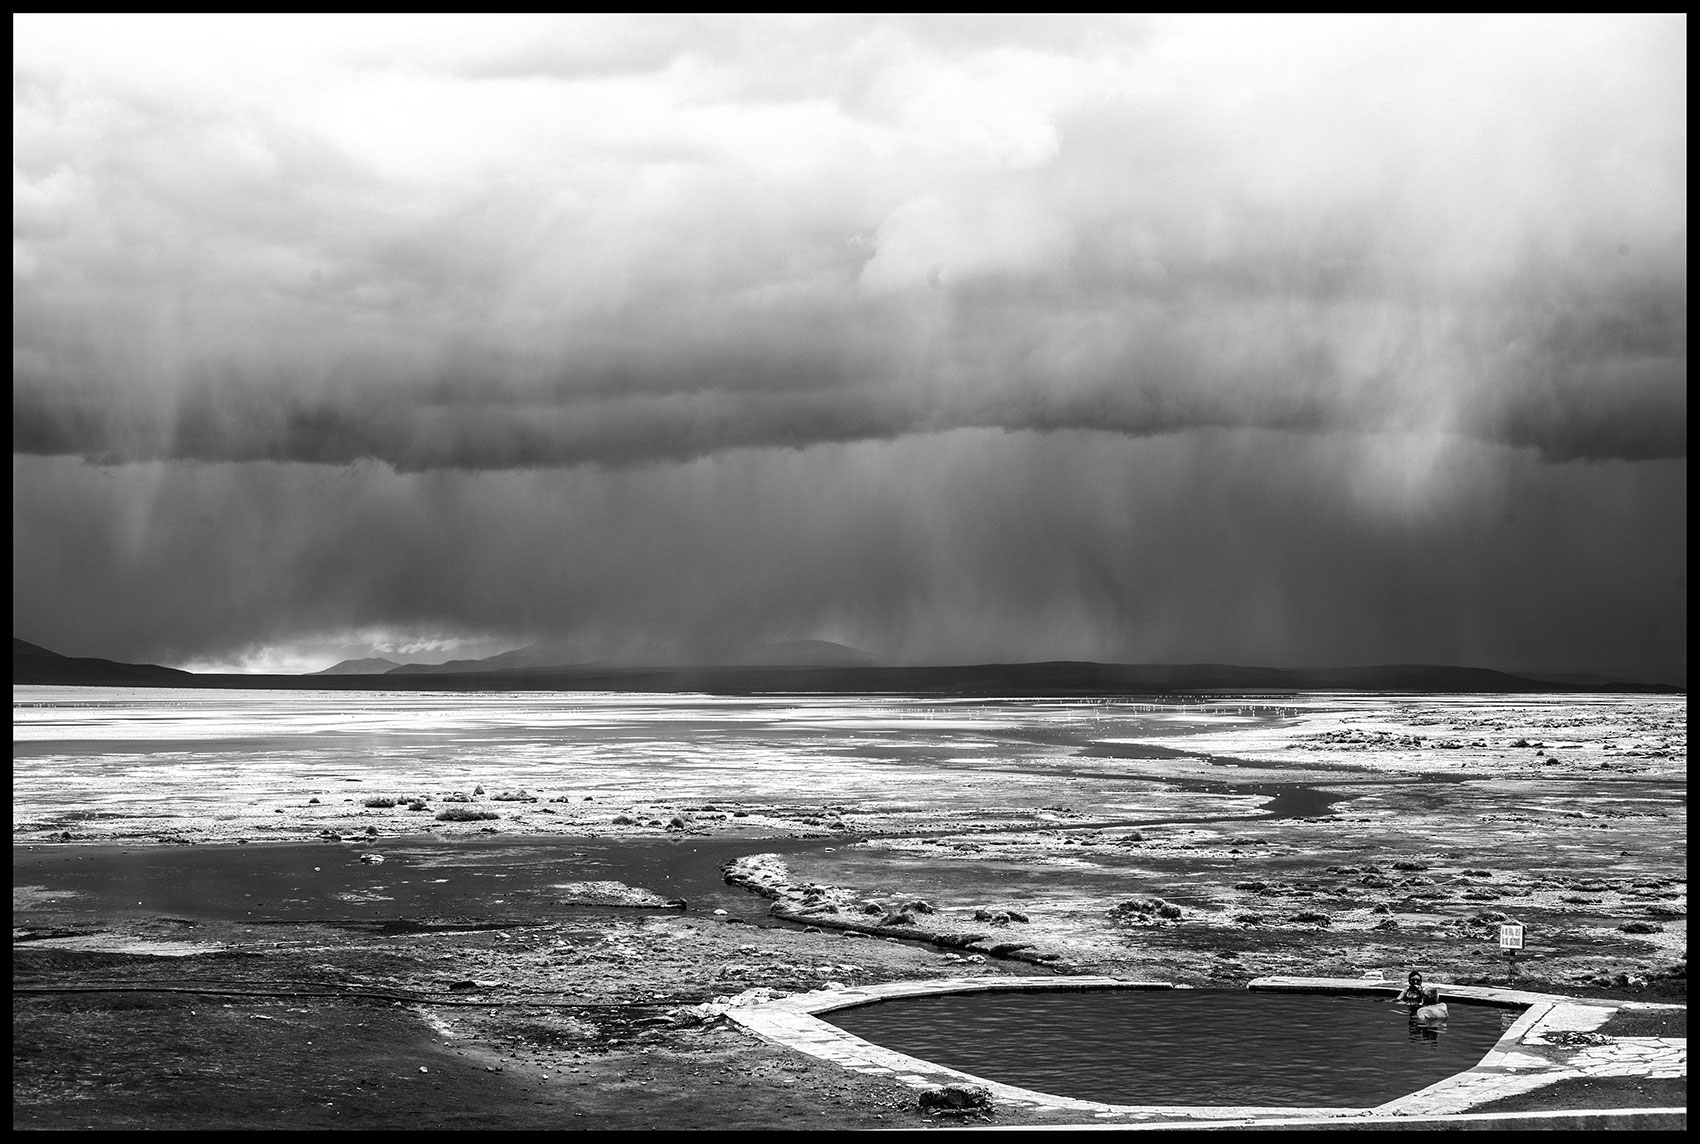 Termas - Before the Storm | Stefano Paradiso - Photographer